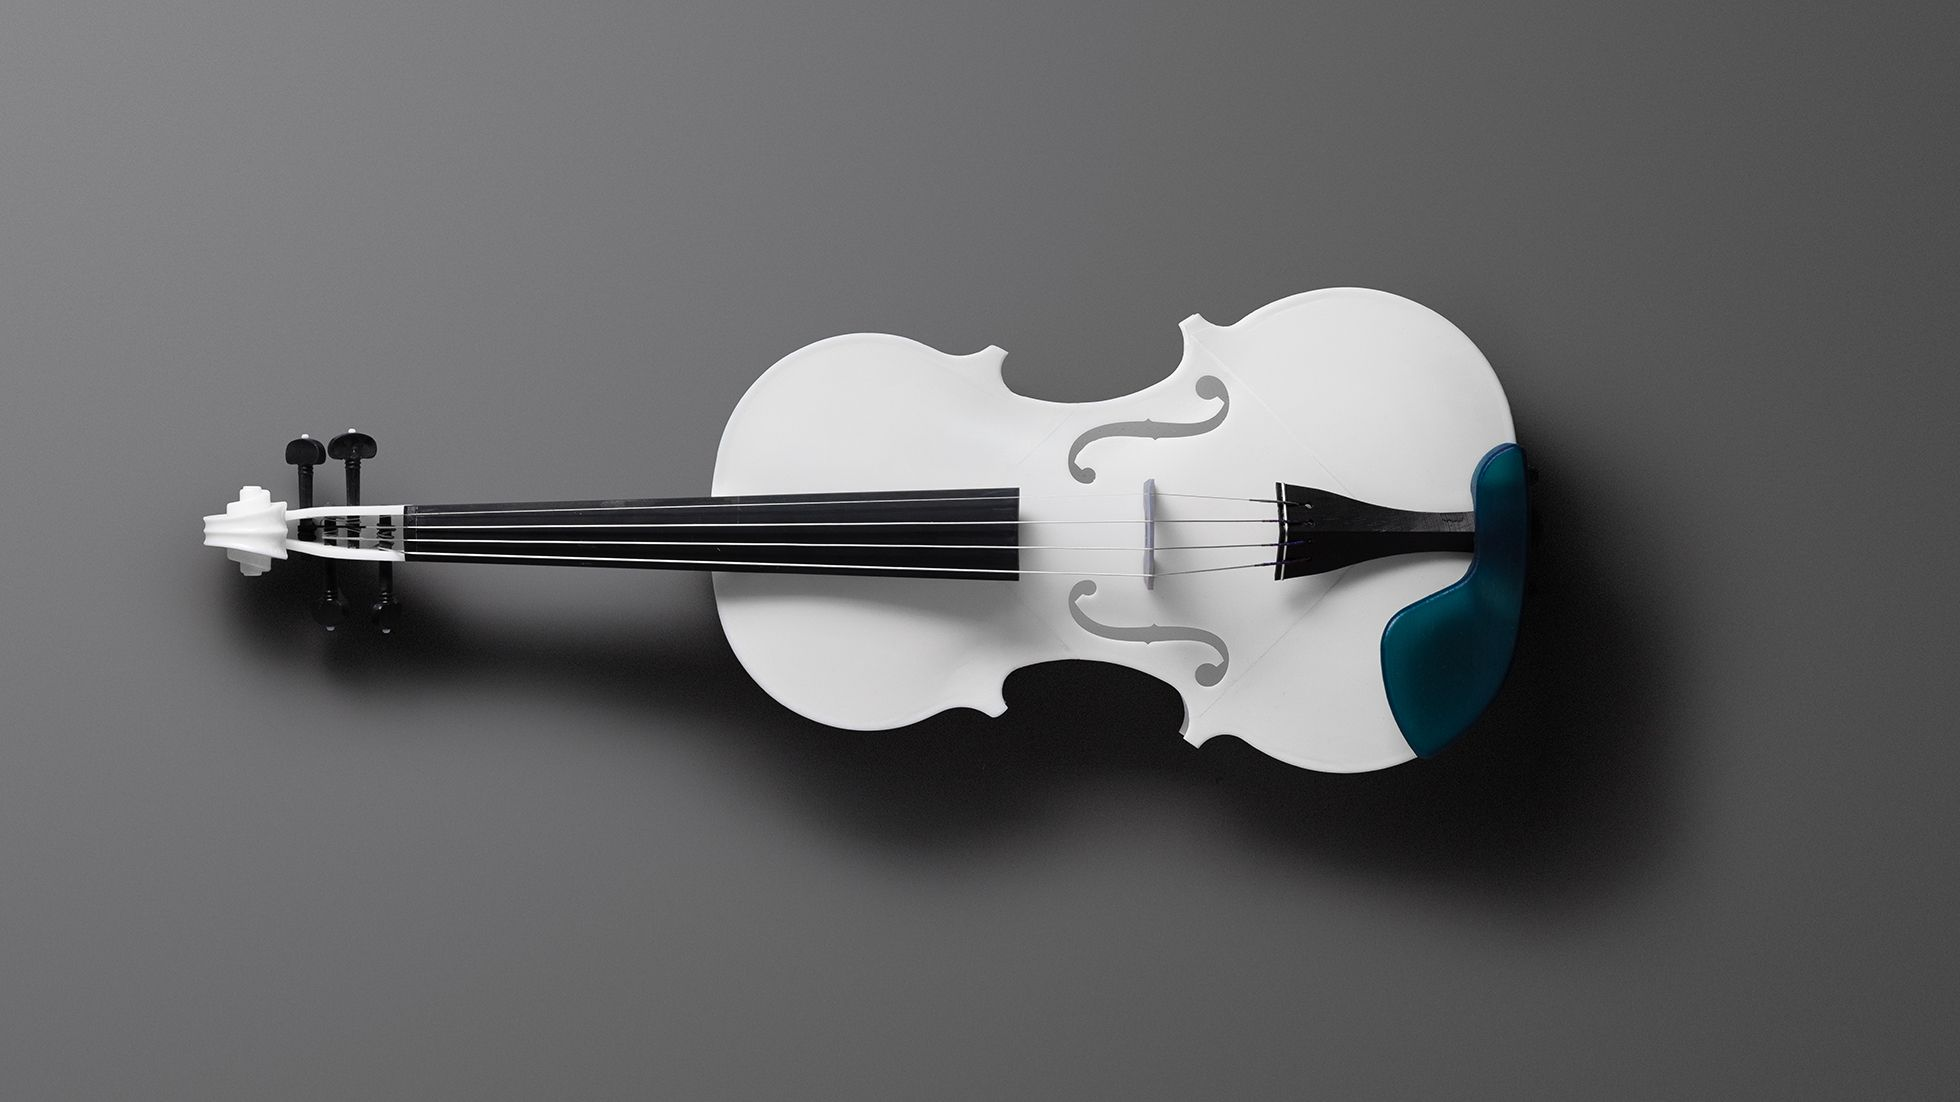 Violin printed in White Resin, designed by Formlabs engineer Brian Chan.